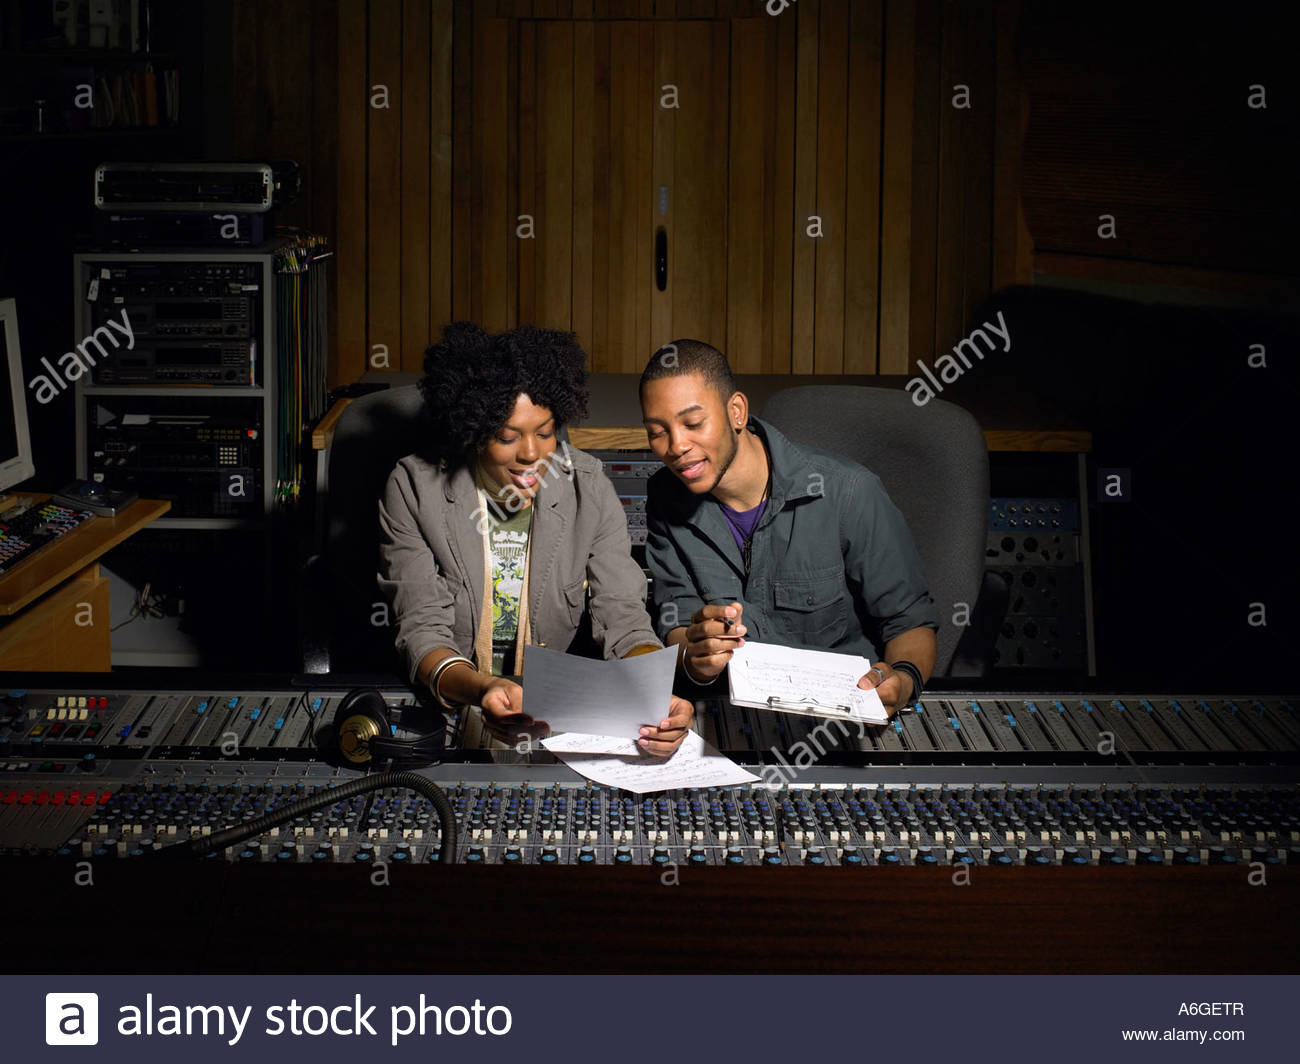 Two music producers working - Stock Image